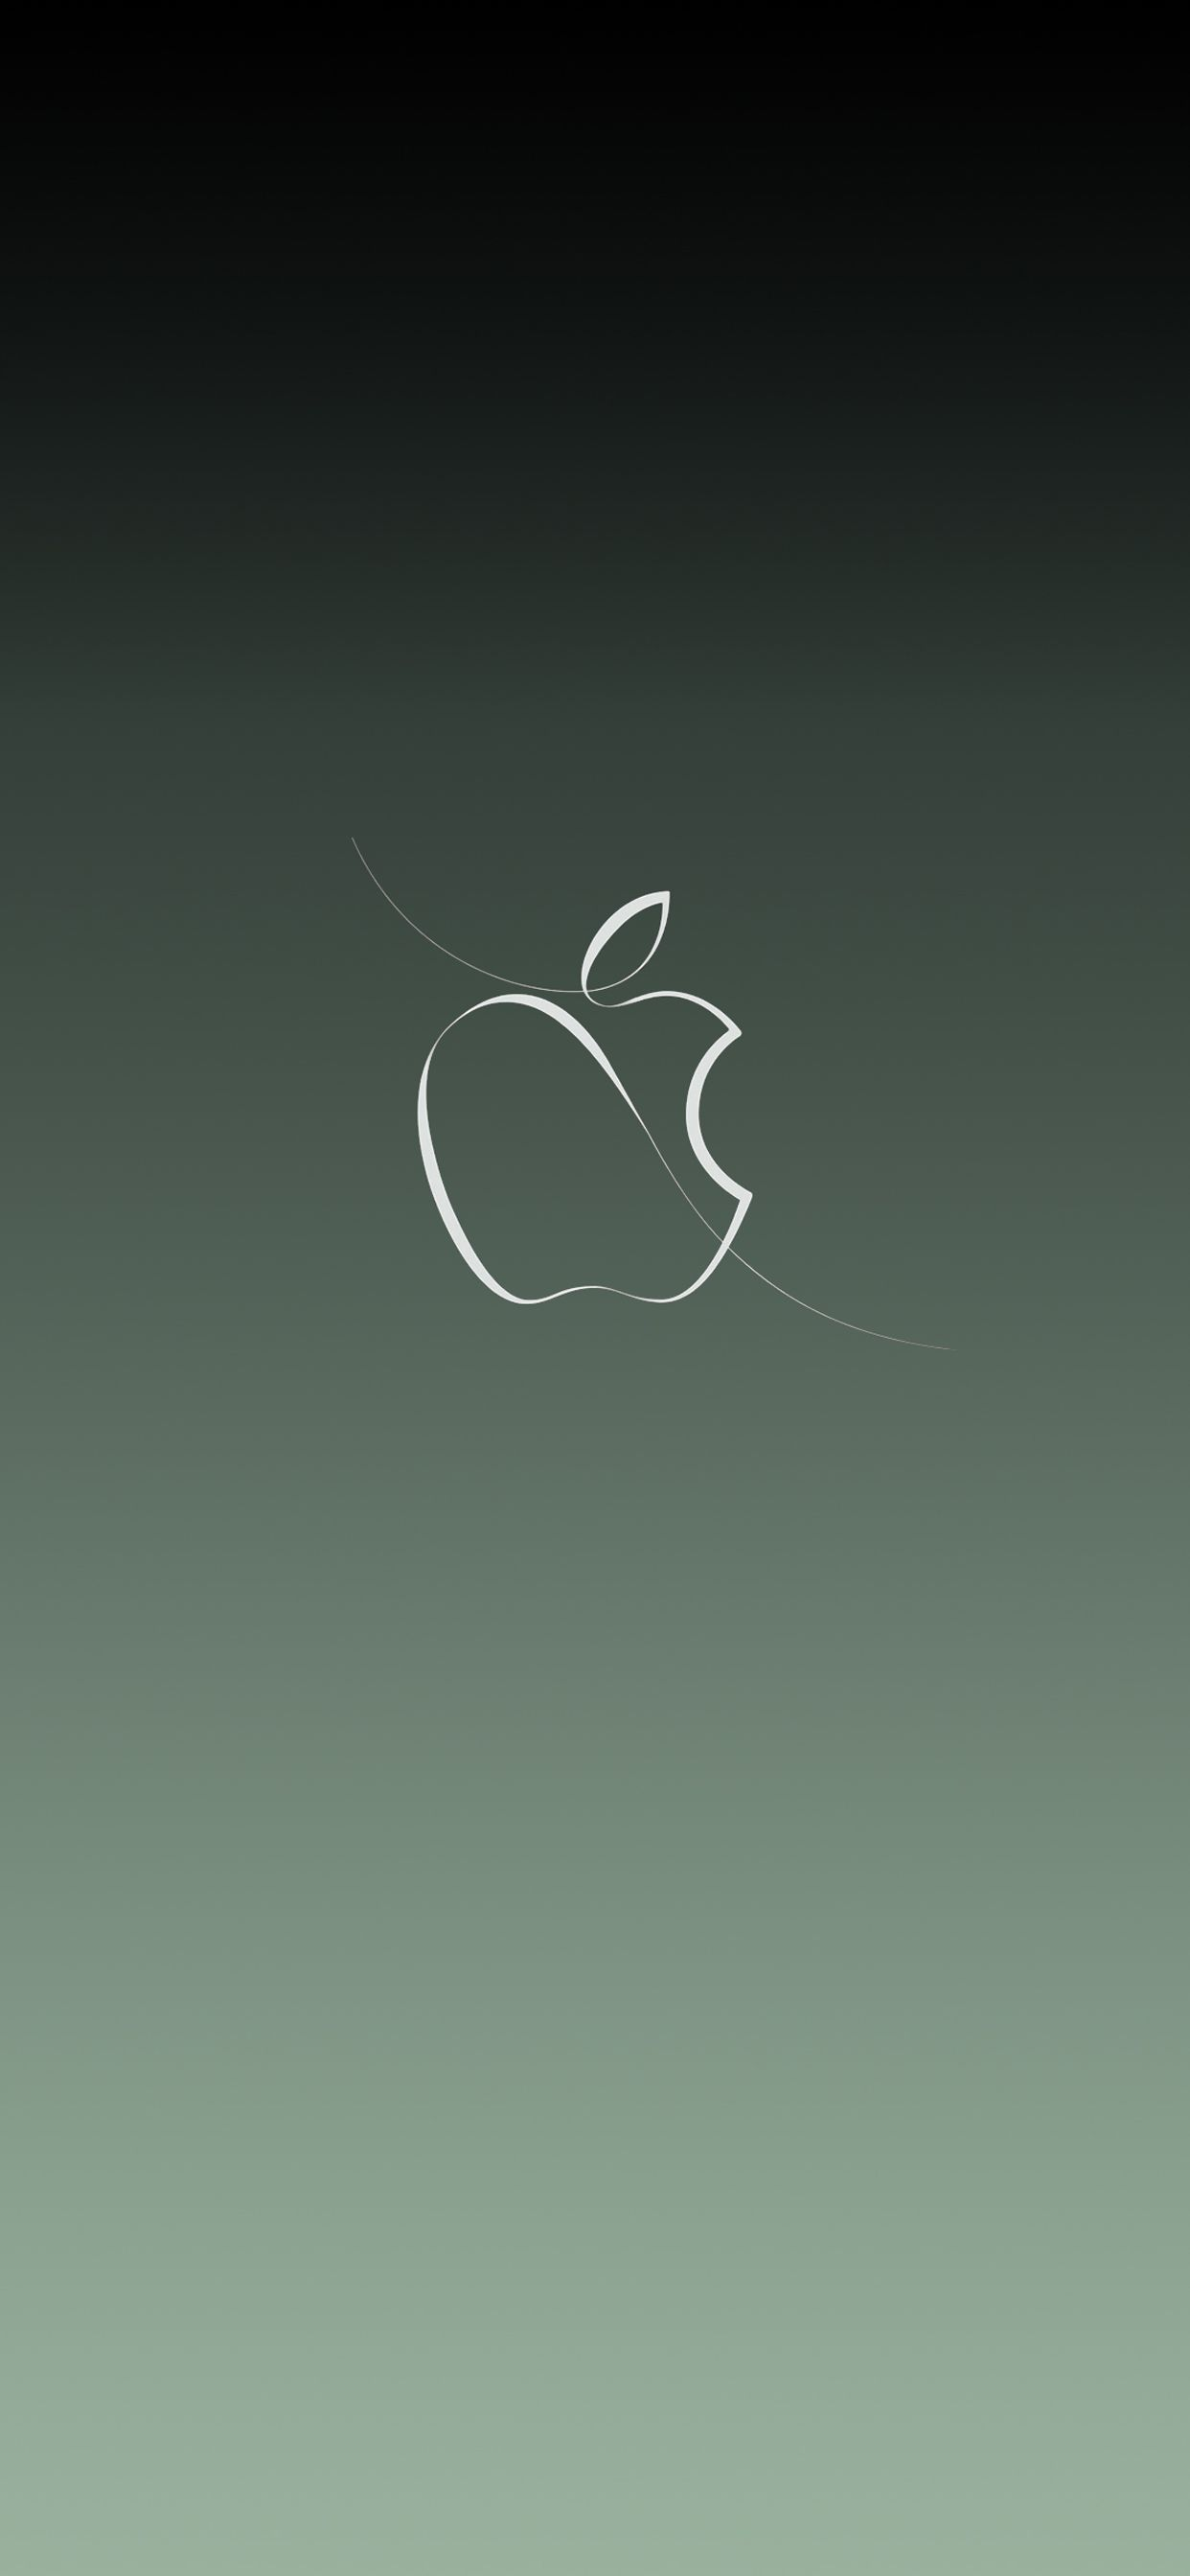 Pin By Dominic On Wallpaper Iphone 11 12 X Xs Max Apple Logo Wallpaper Iphone Apple Wallpaper Apple Wallpaper Iphone